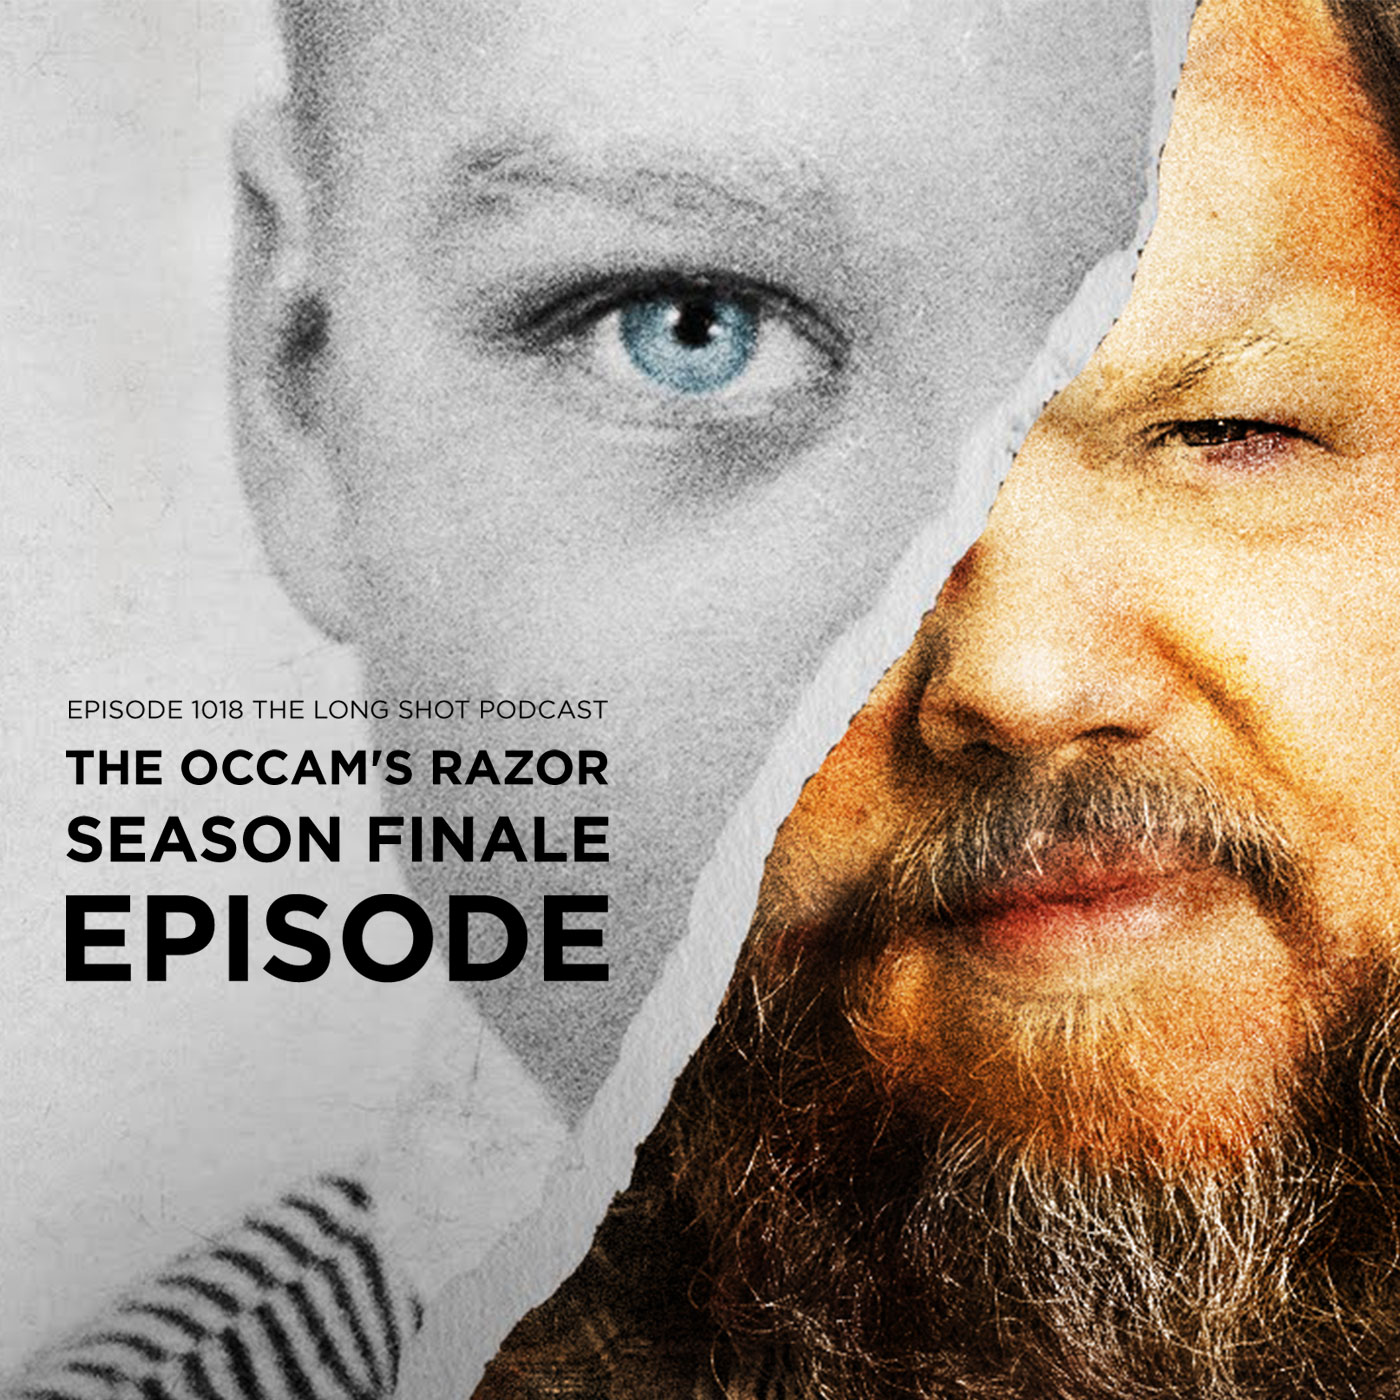 Episode #1018 The Occam's Razor Season Finale Episode